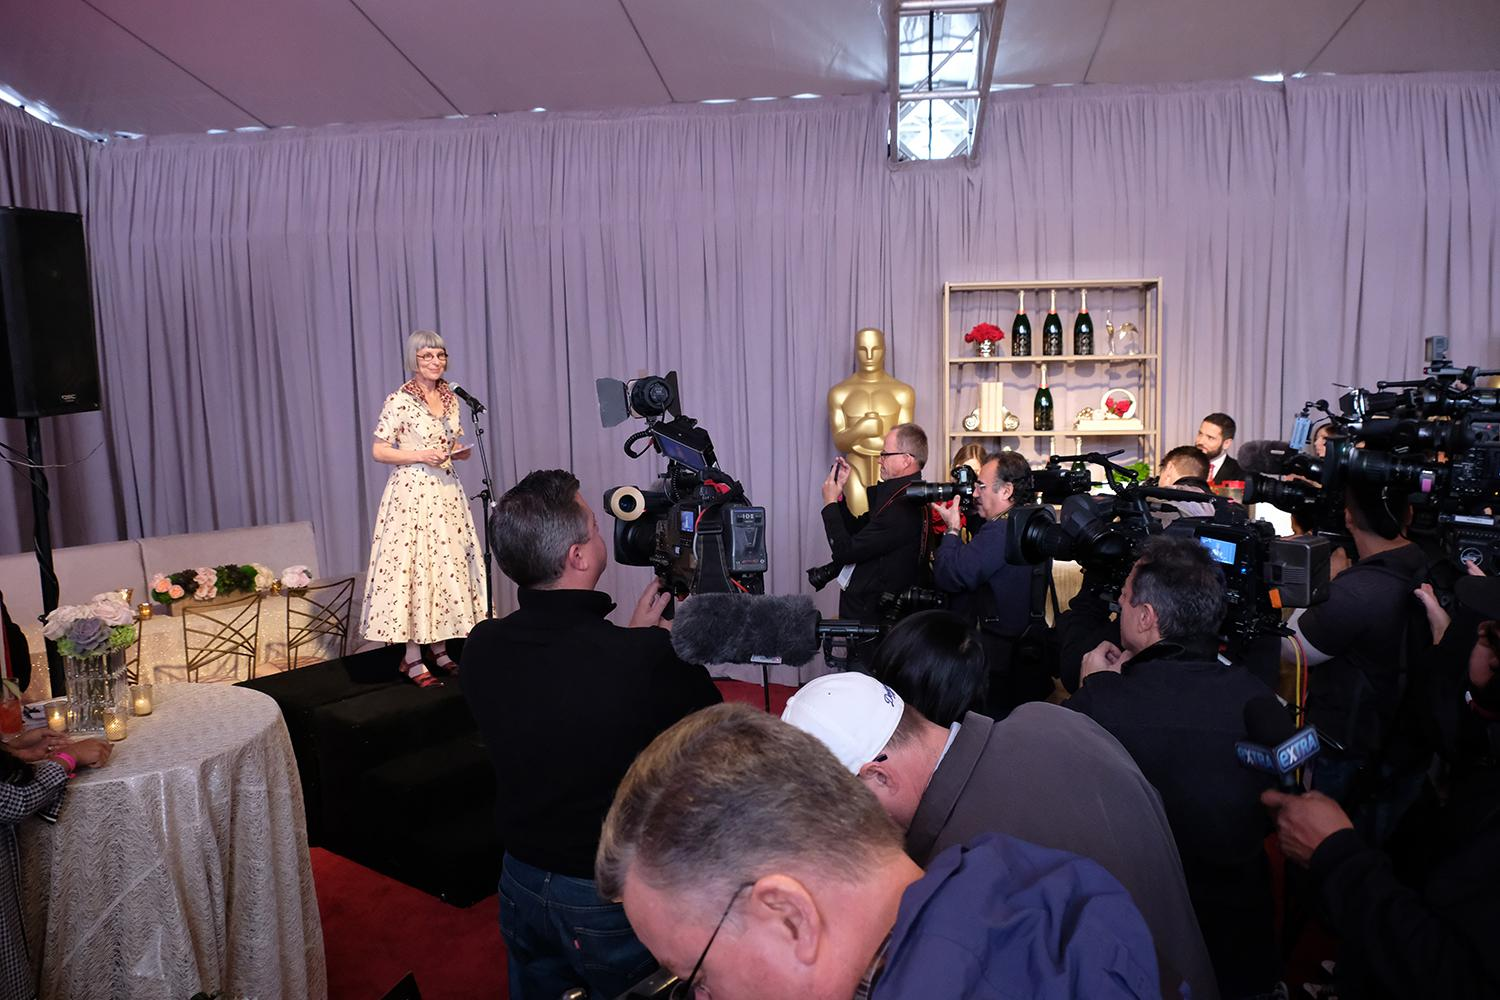 Academy's Awards and Events Committee chair, Lois Burwell during the Academy's Governors Ball preview on Thursday, March 1, 2018. The Academy's Governors Ball will be held in the Ray Dolby Ballroom on the top level of the Hollywood & Highland Center®. The 90th Oscars® for outstanding film achievements of 2017 will be presented on Sunday, March 4, 2018 at the Dolby Theatre® in Hollywood, CA and televised live by the ABC Television Network.